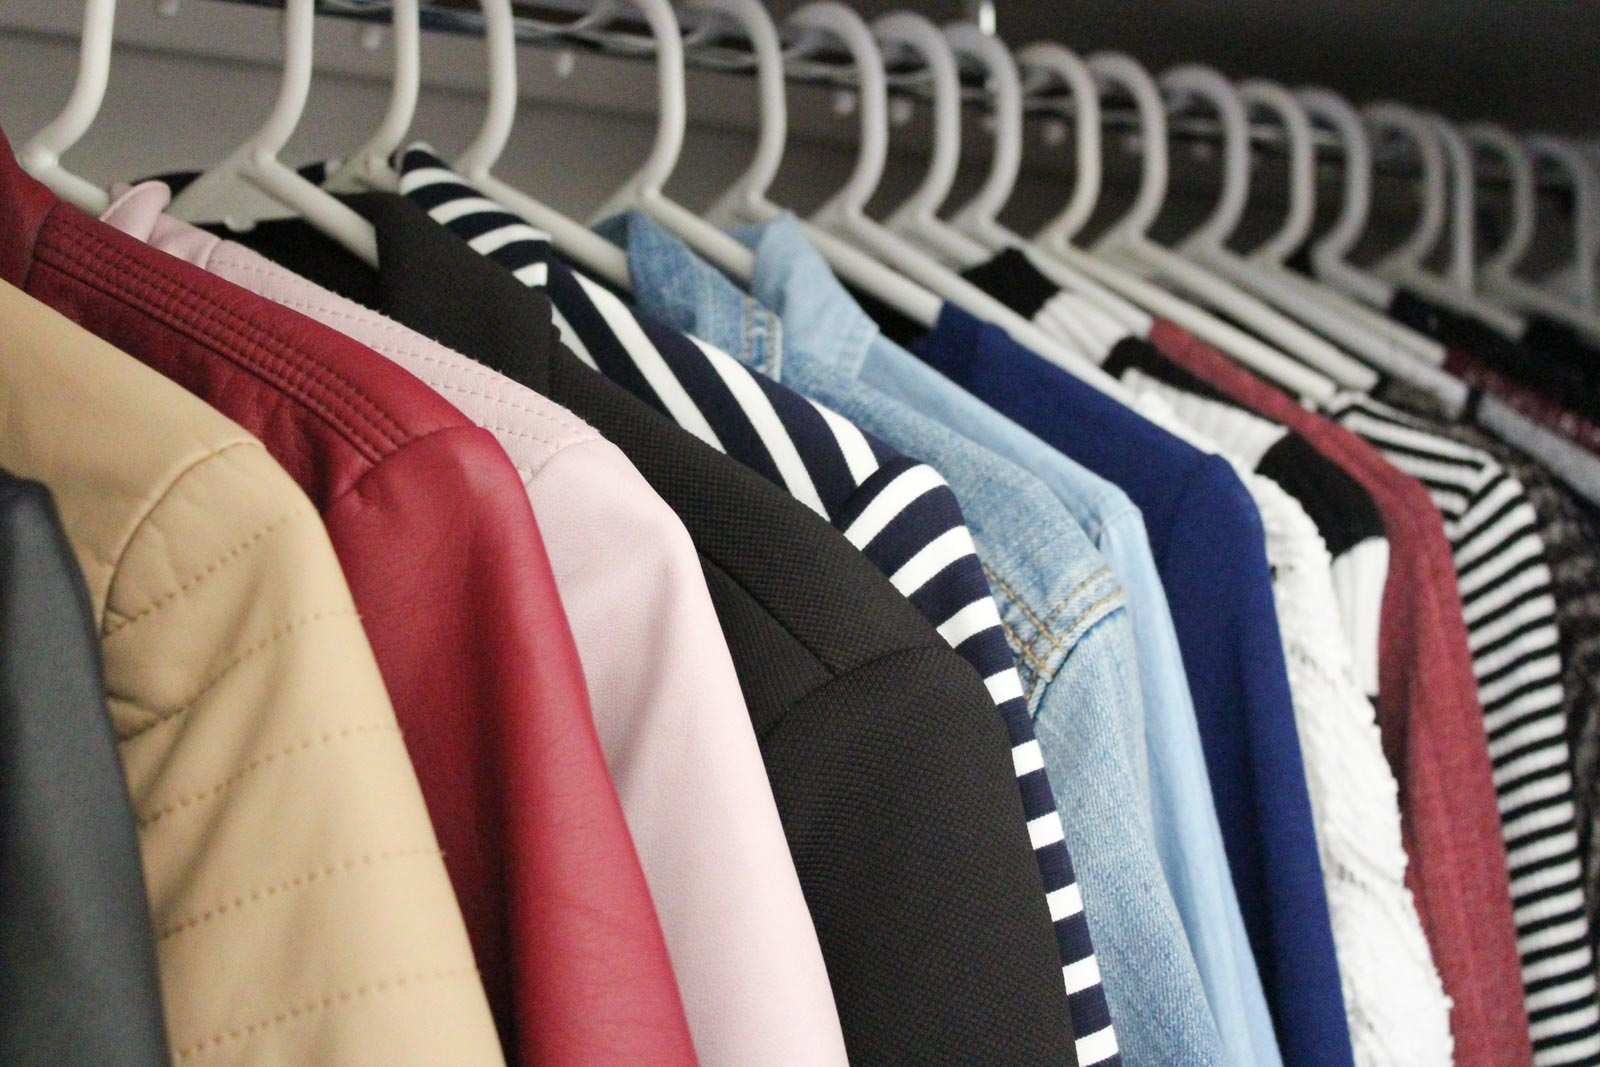 The Capsule Wardrobe: What Is It? | Cate Renée